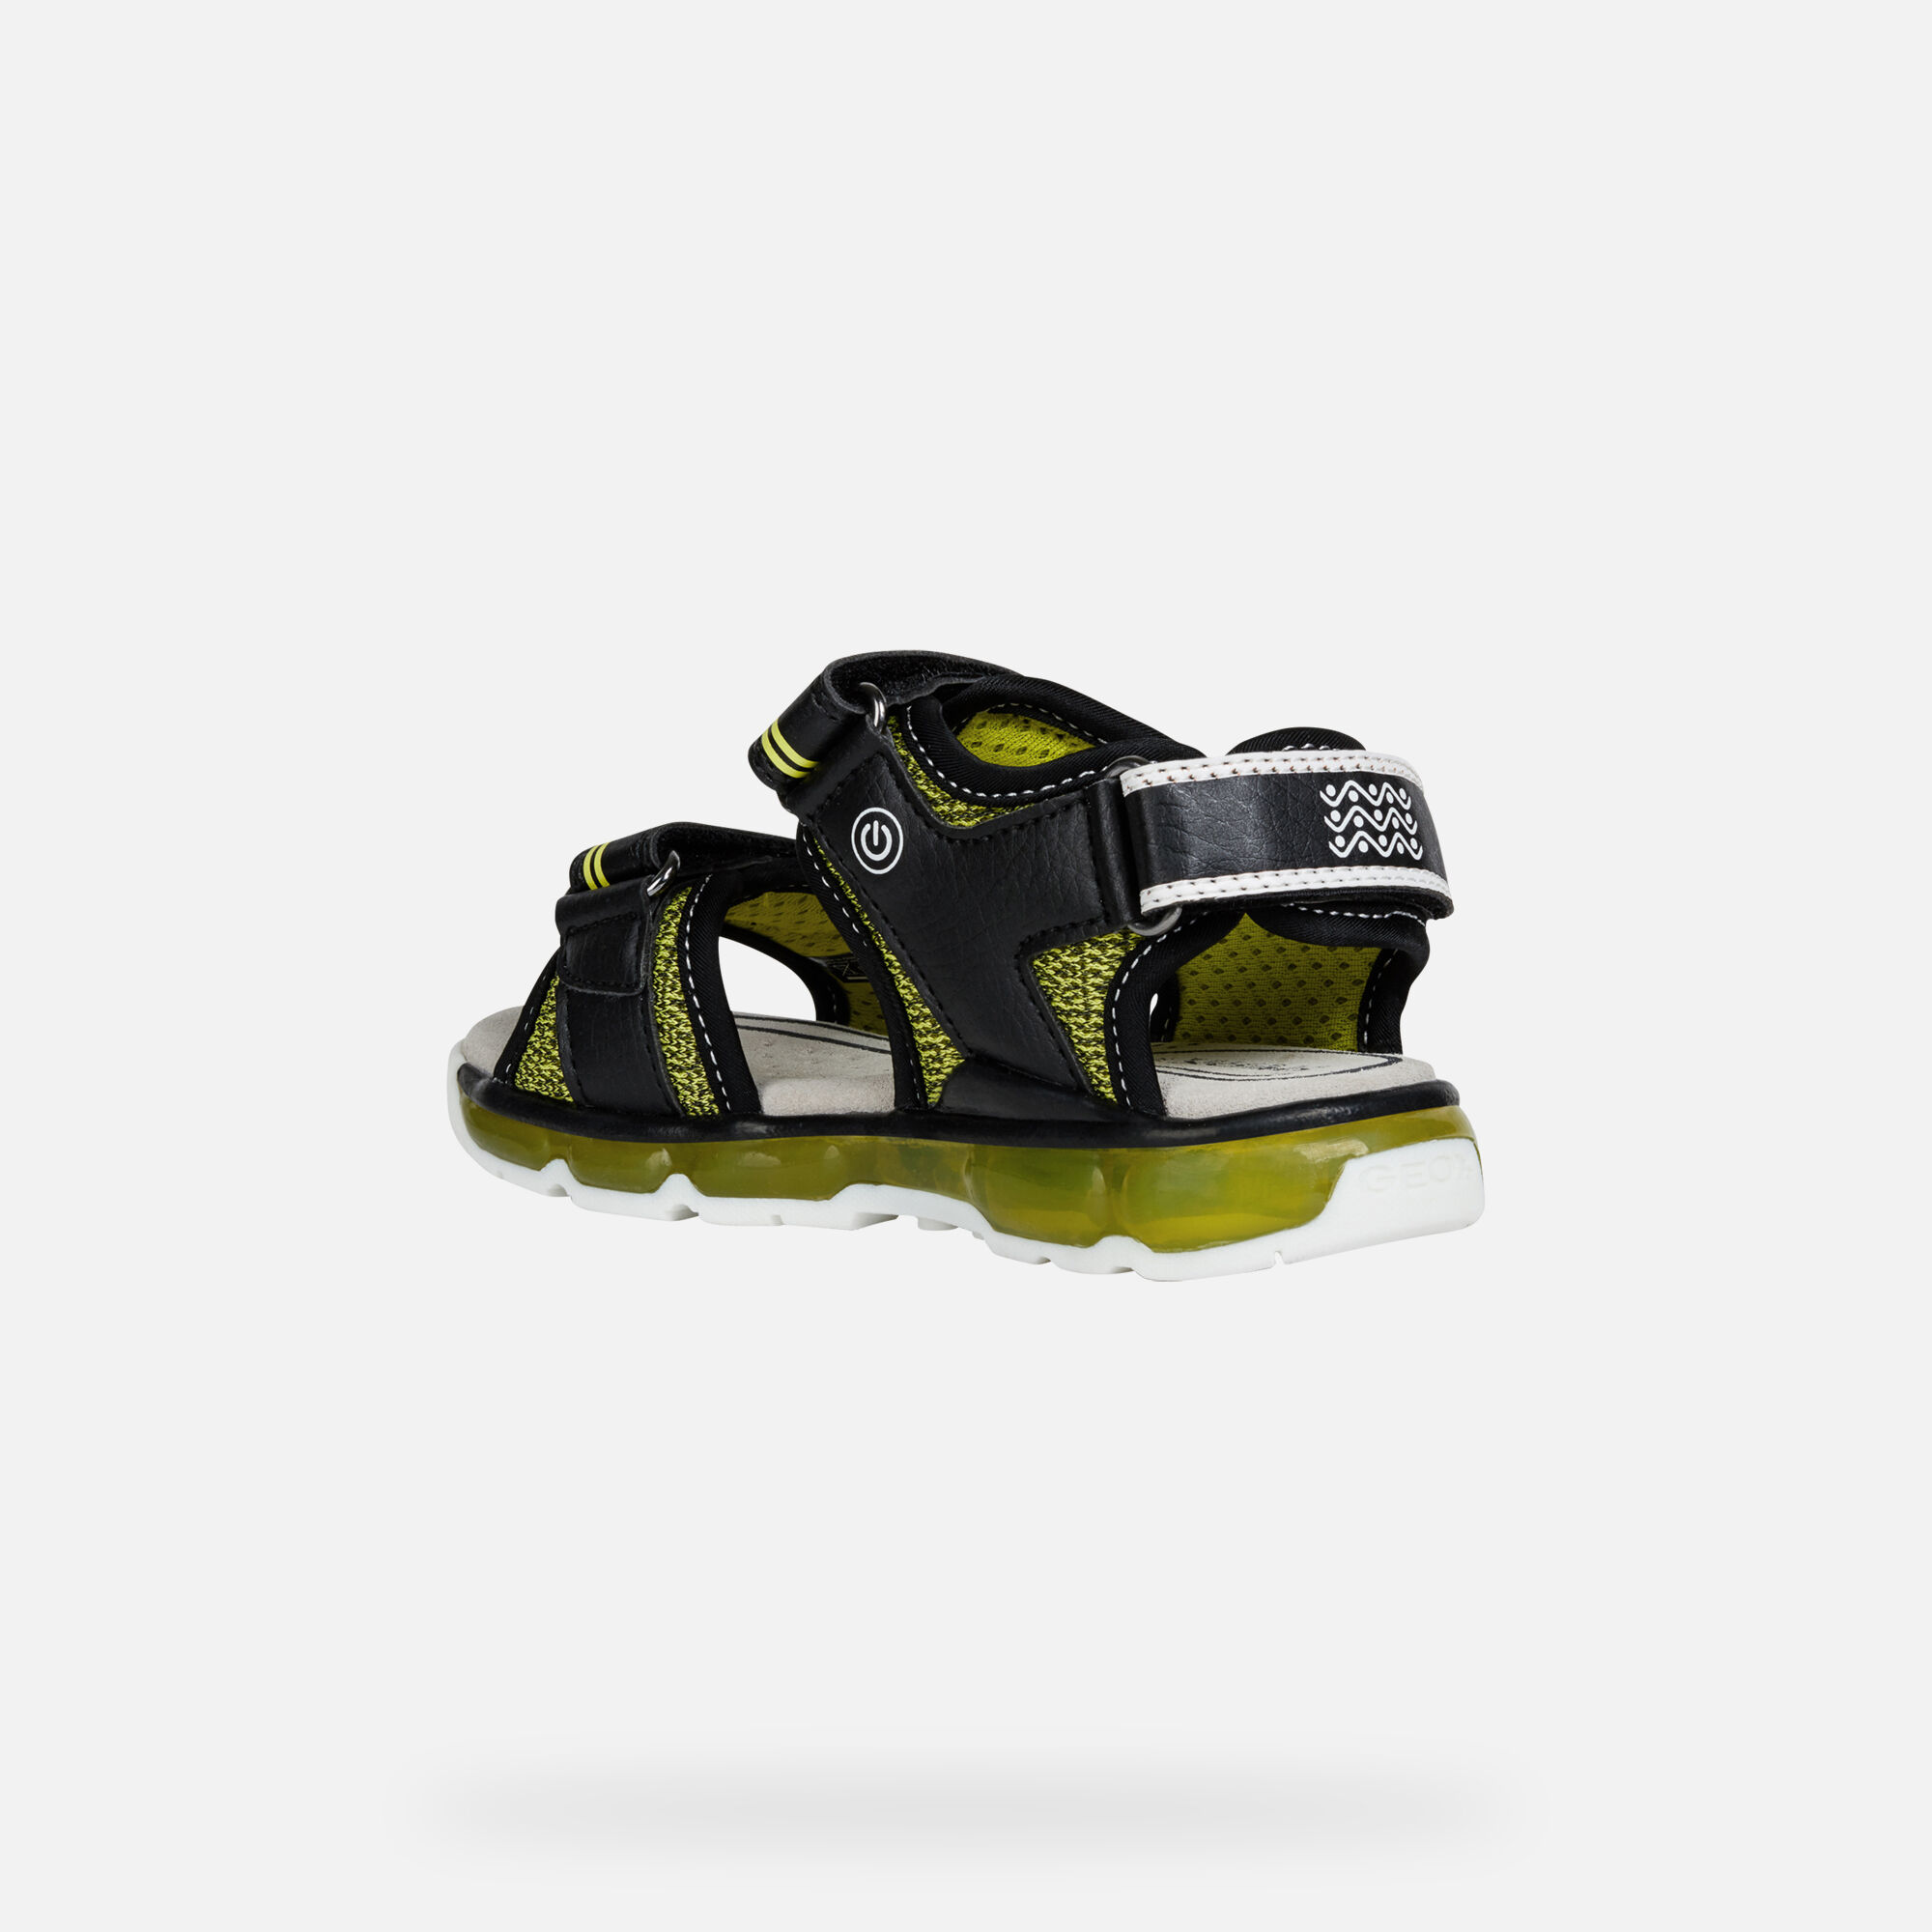 Jr android boy | william | Shoes, Light up shoes, Sandals